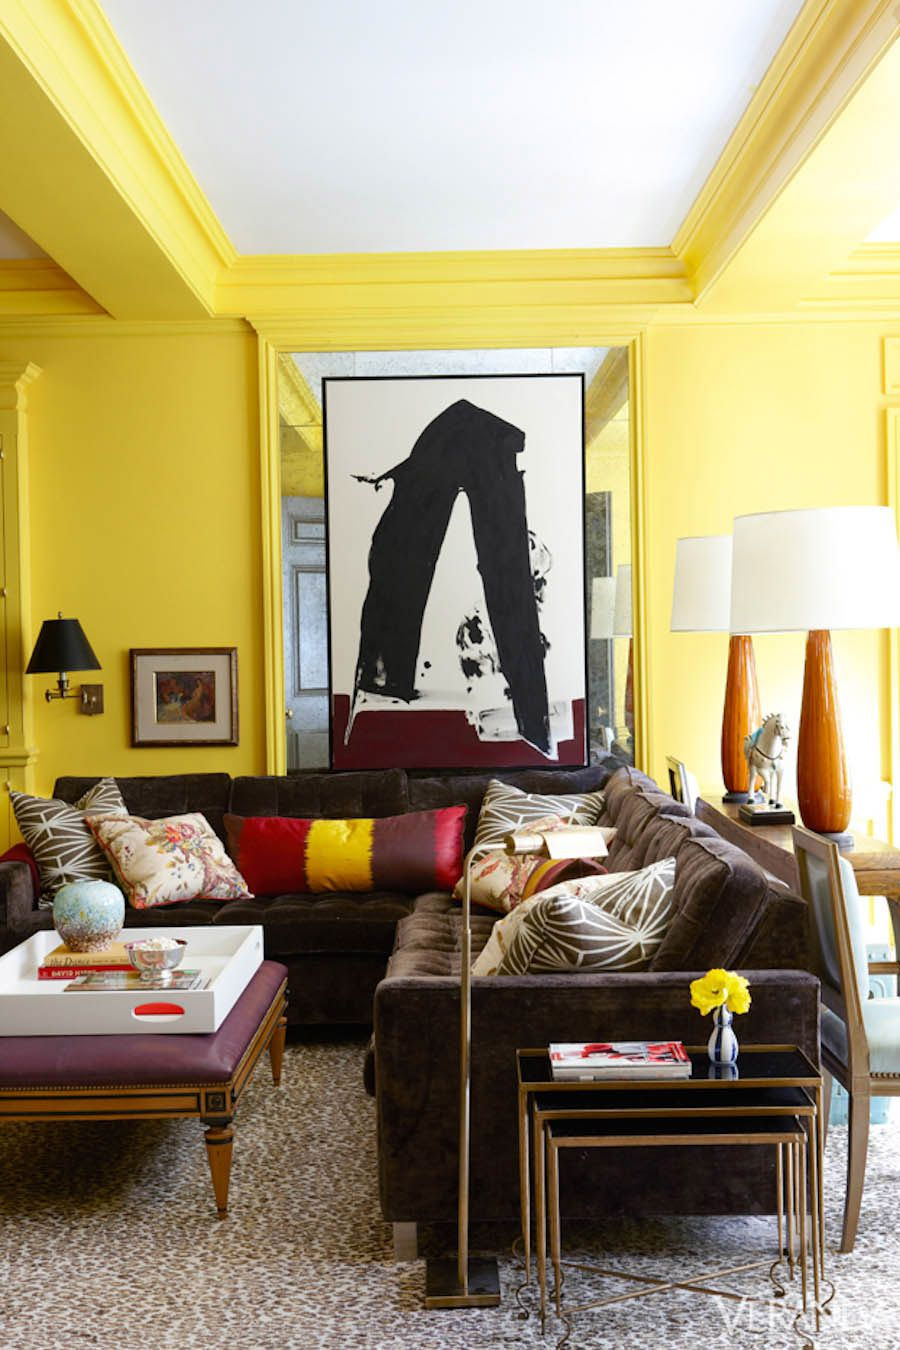 10 Best Shades of Yellow - Top Yellow Paint Colors